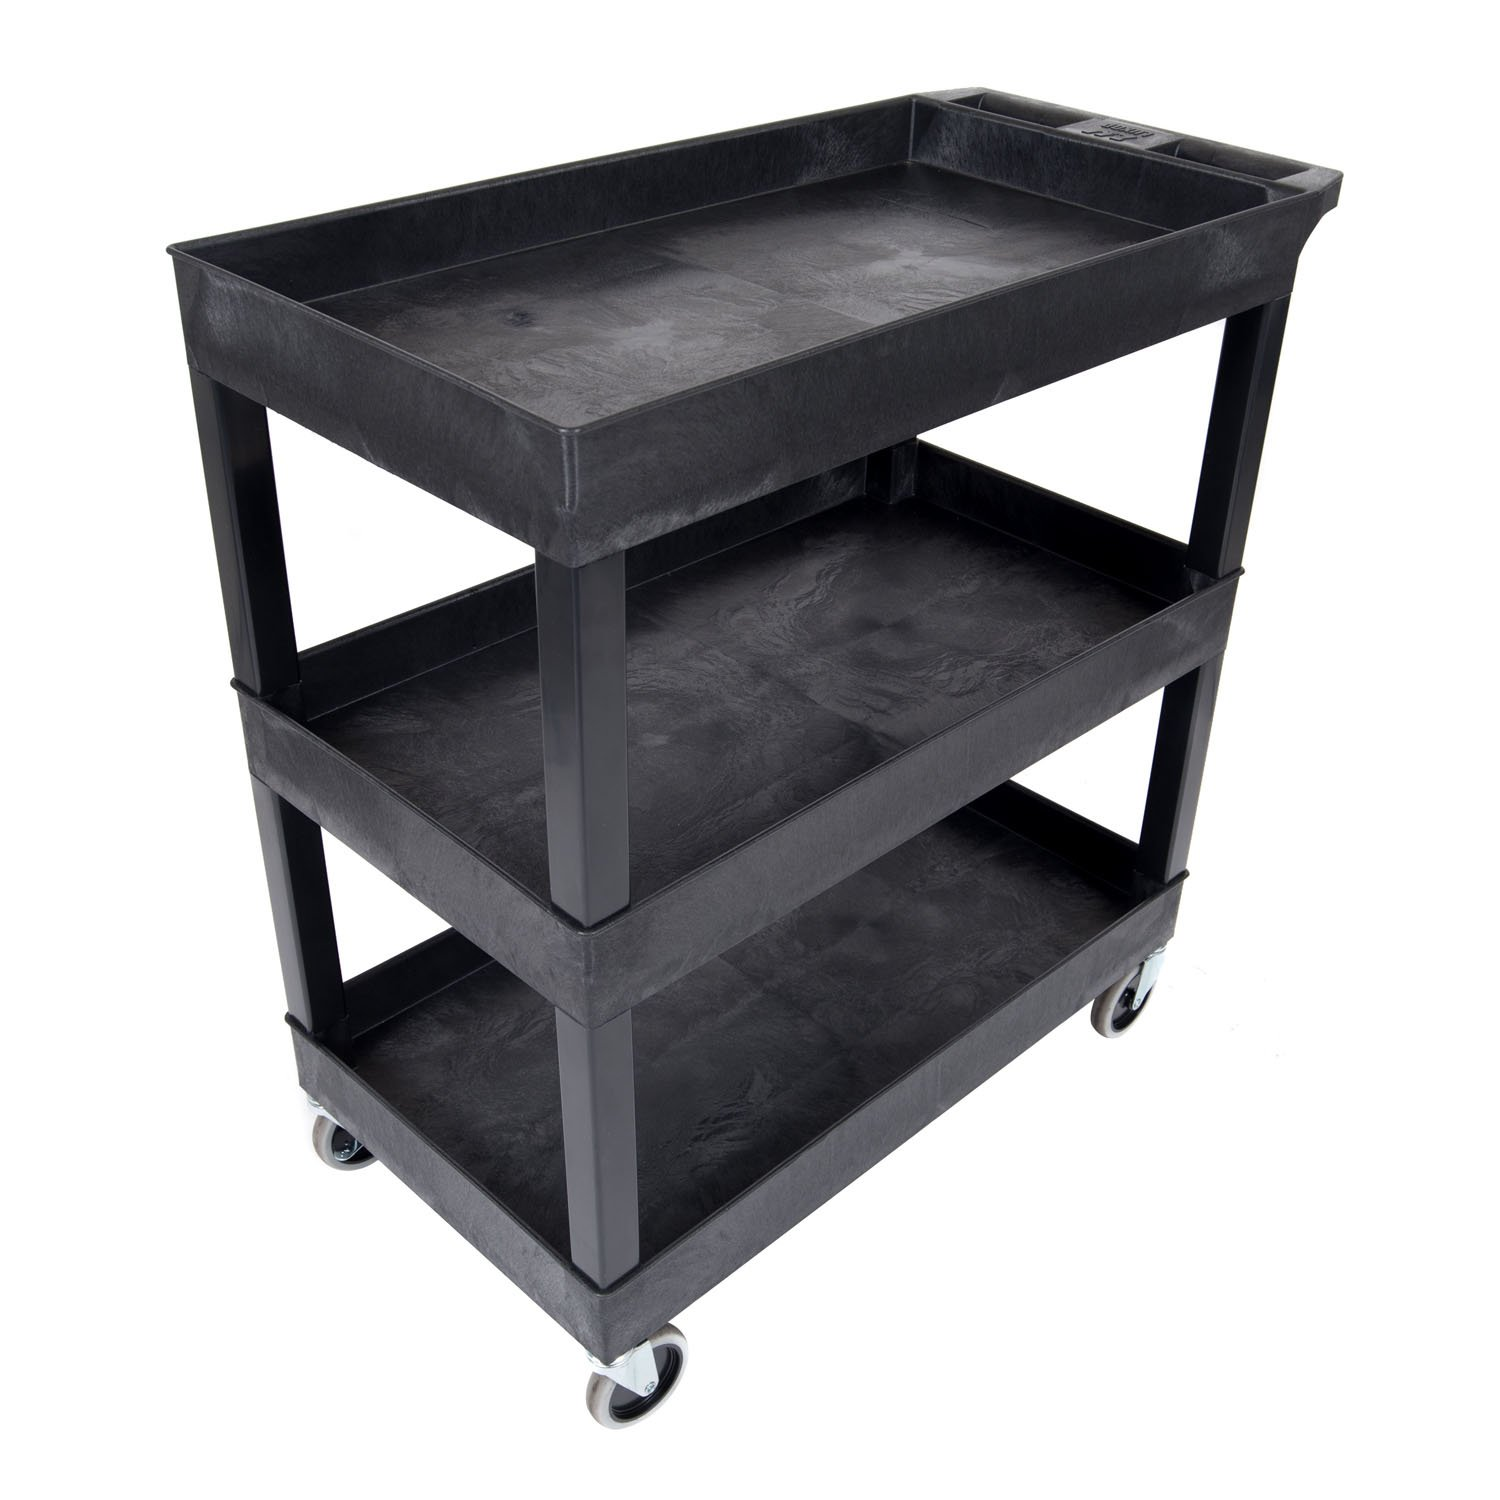 Luxor EC111-B Tub Storage Cart 3 Shelves - Black,32'' x 18''